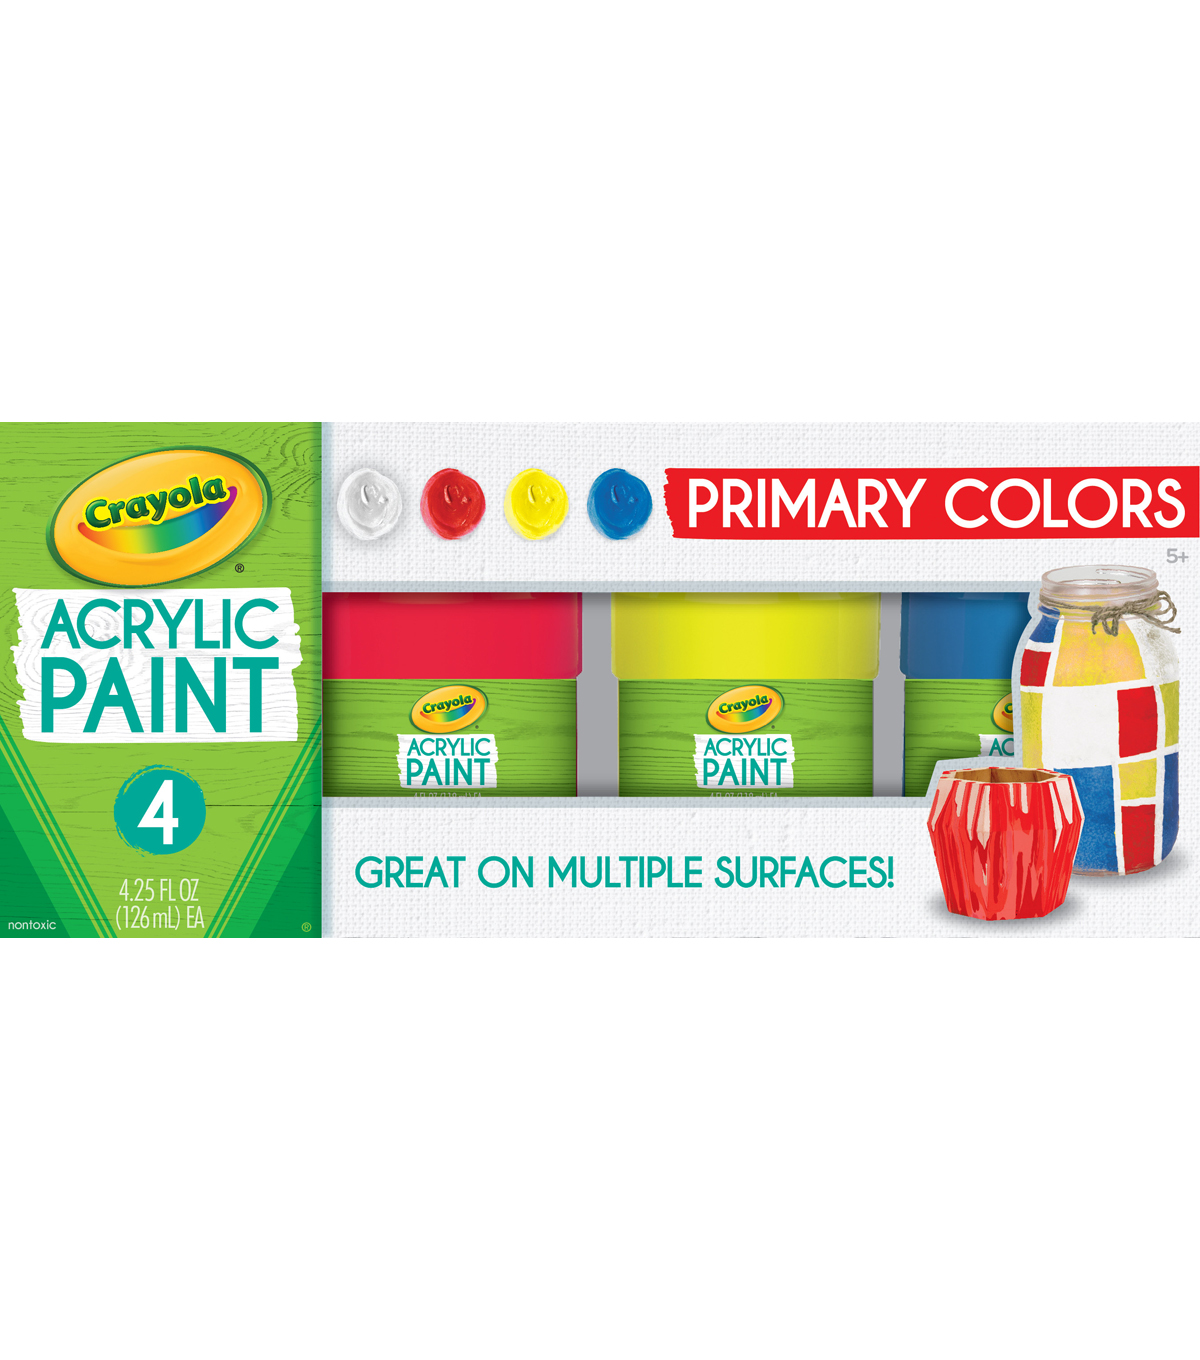 Crayola Acrylic Paint Set 4.25oz 4/Pkg-Primary